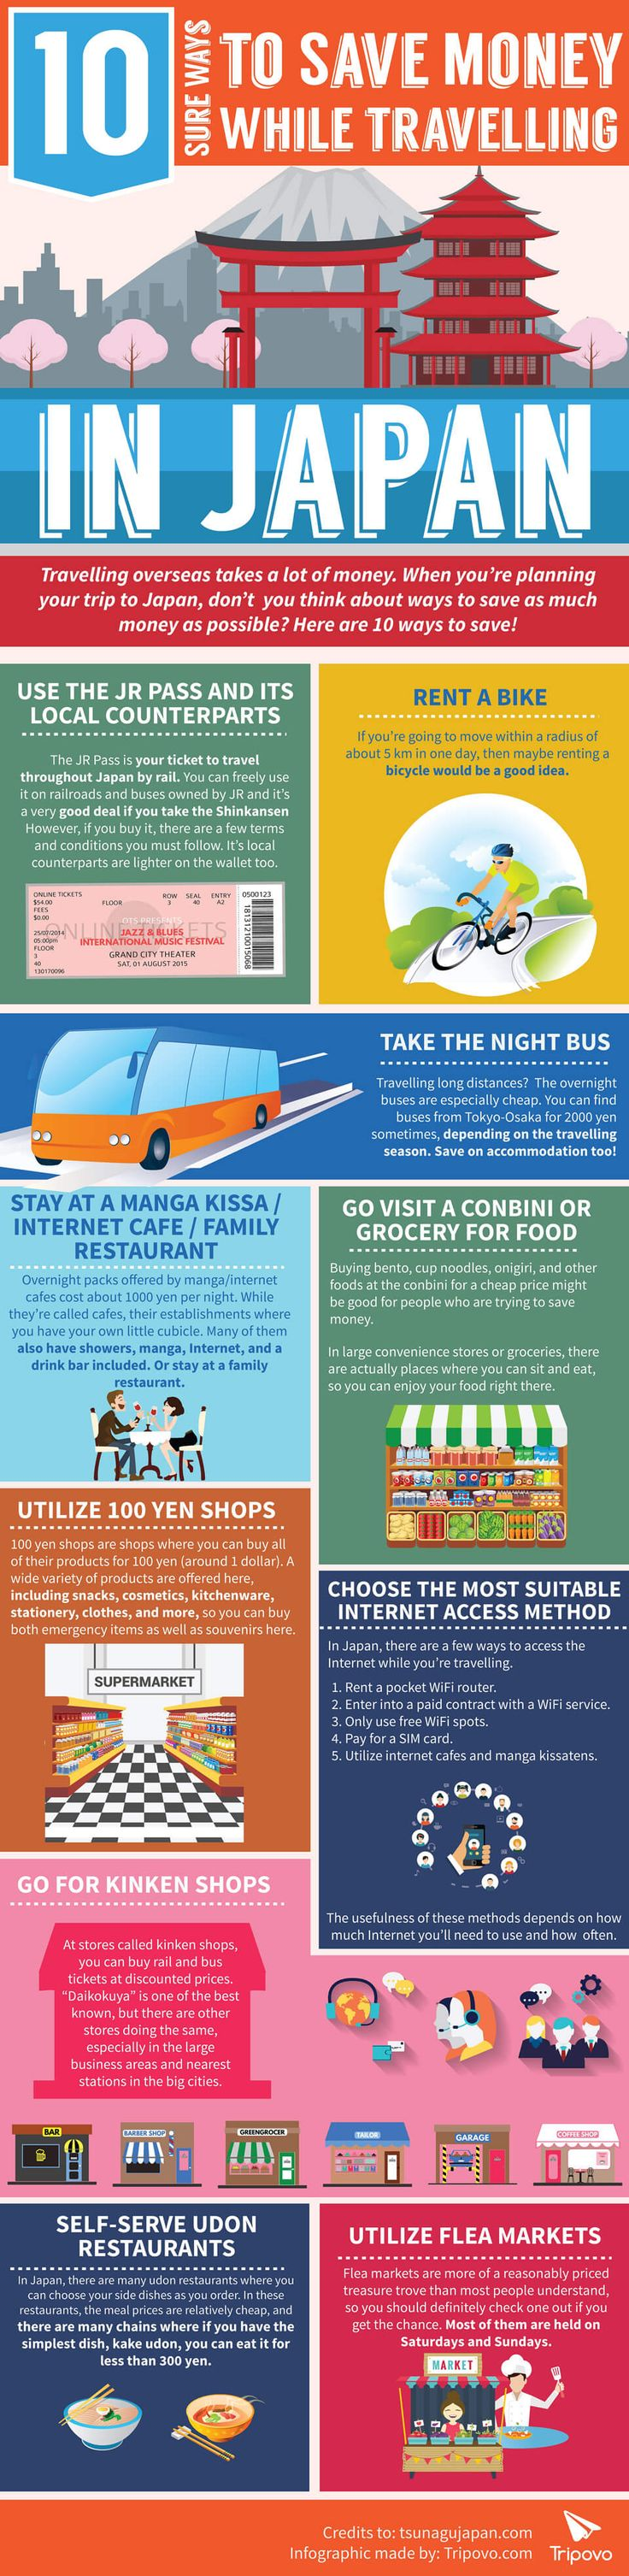 10 Smart Ways To Save #Money In #Japan - Do you fancy an infographic? There are a lot of them online, but if you want your own please visit http://www.linfografico.com/prezzi/ Online girano molte infografiche, se ne vuoi realizzare una tutta tua visita ht http://vtraveltips.net